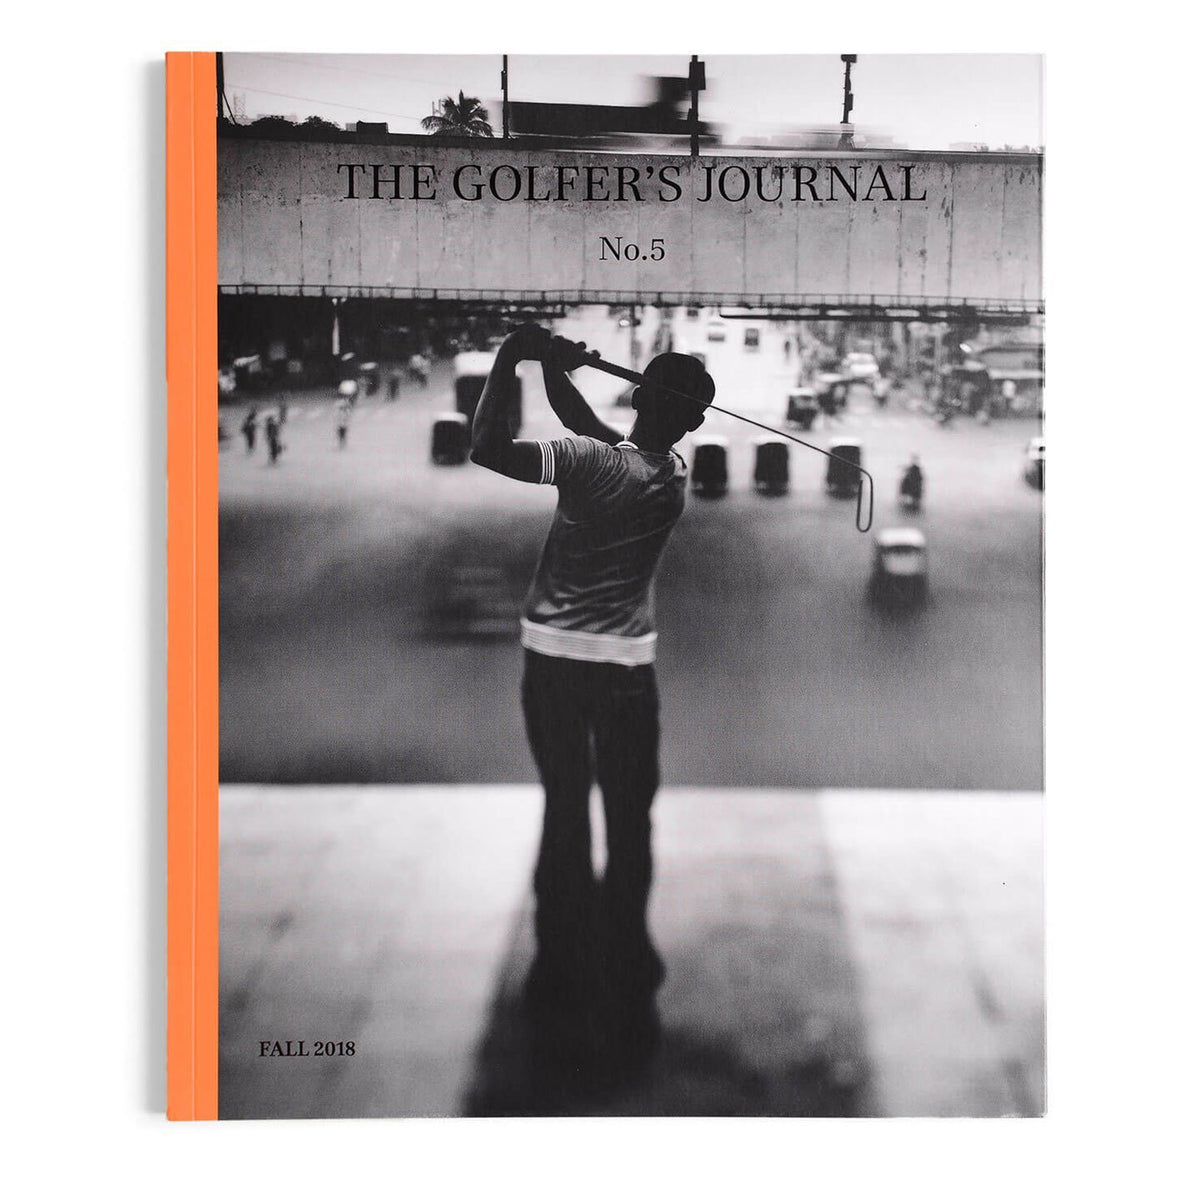 The Golfer's Journal #5